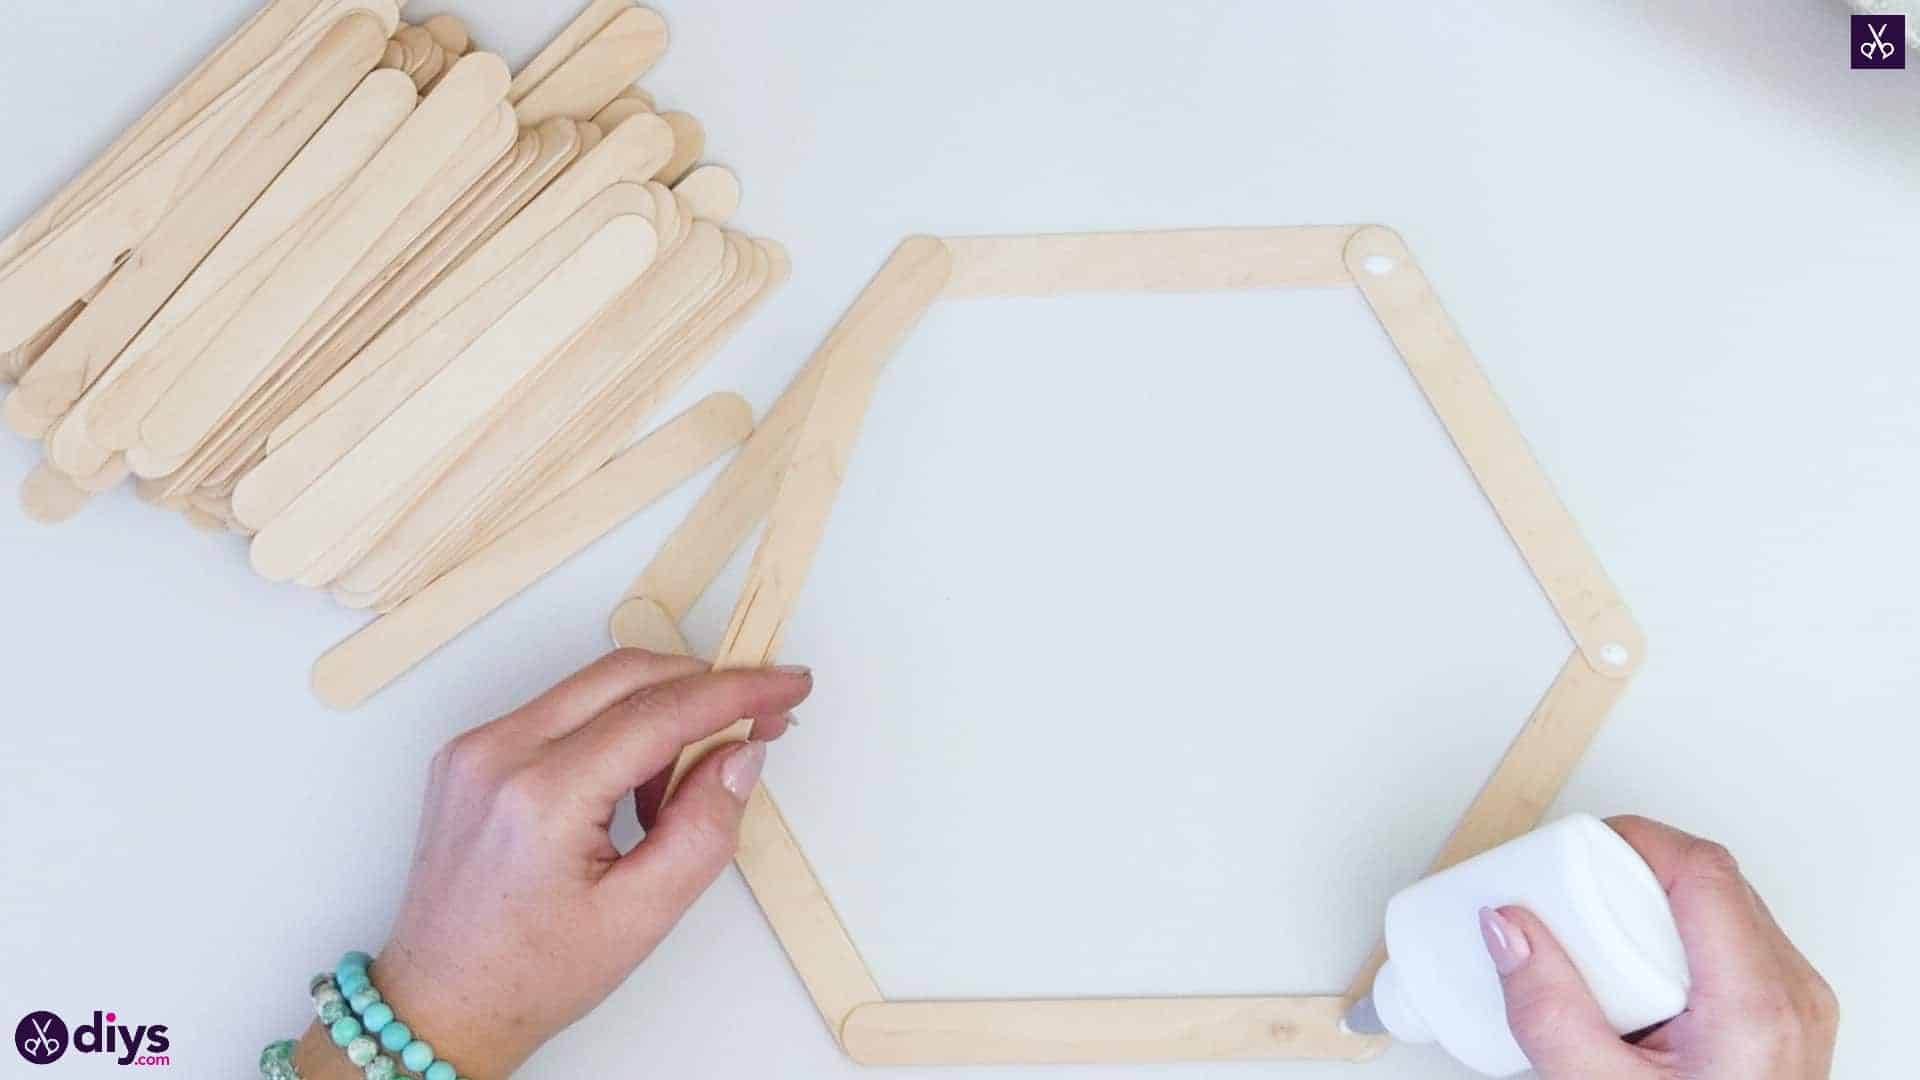 Diy popsicle stick hexagon shelf step 2b